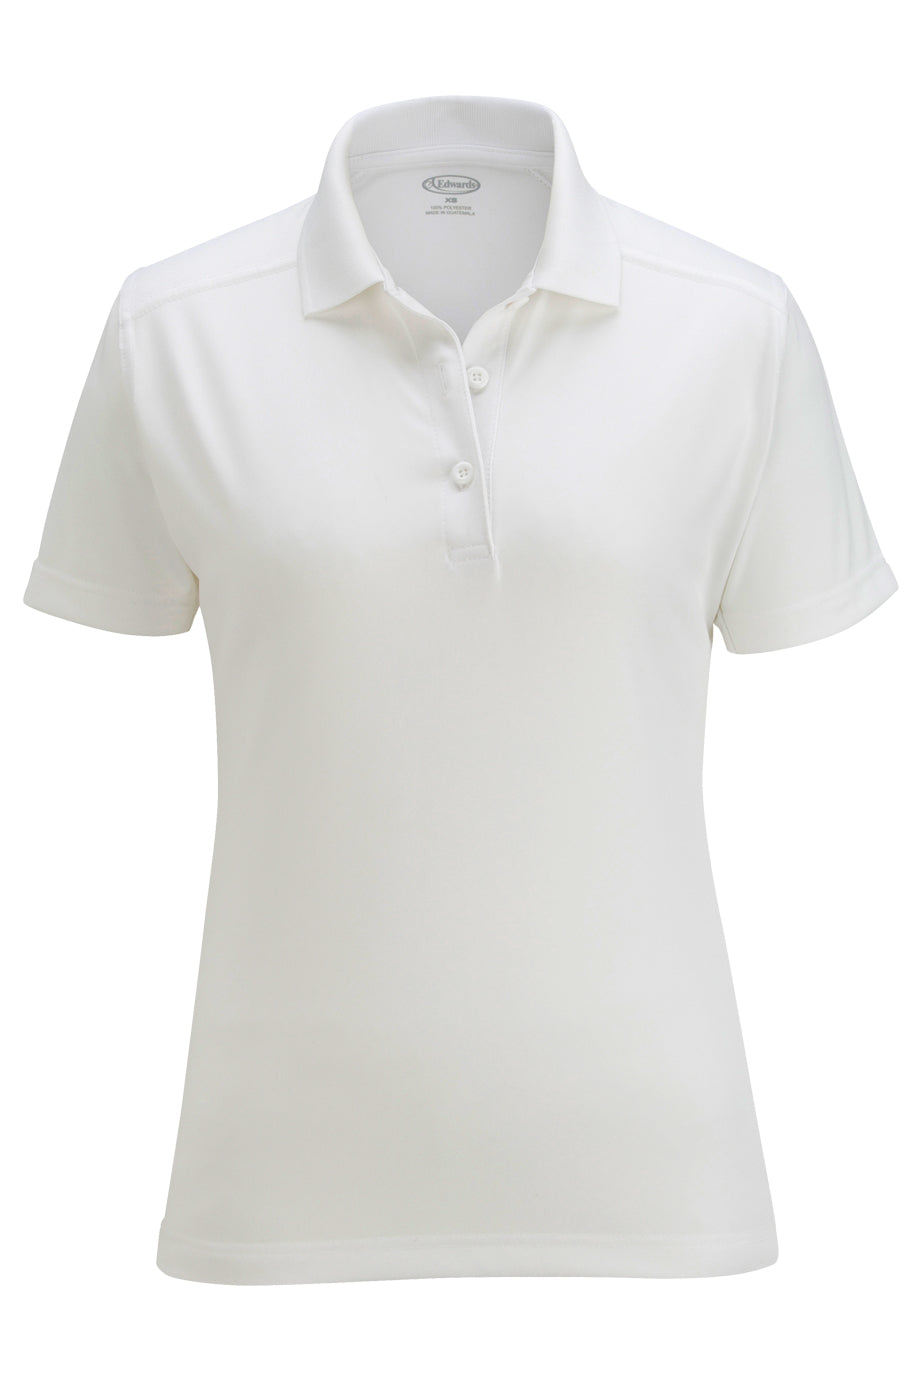 Women's Snag-Proof Short Sleeve Polo